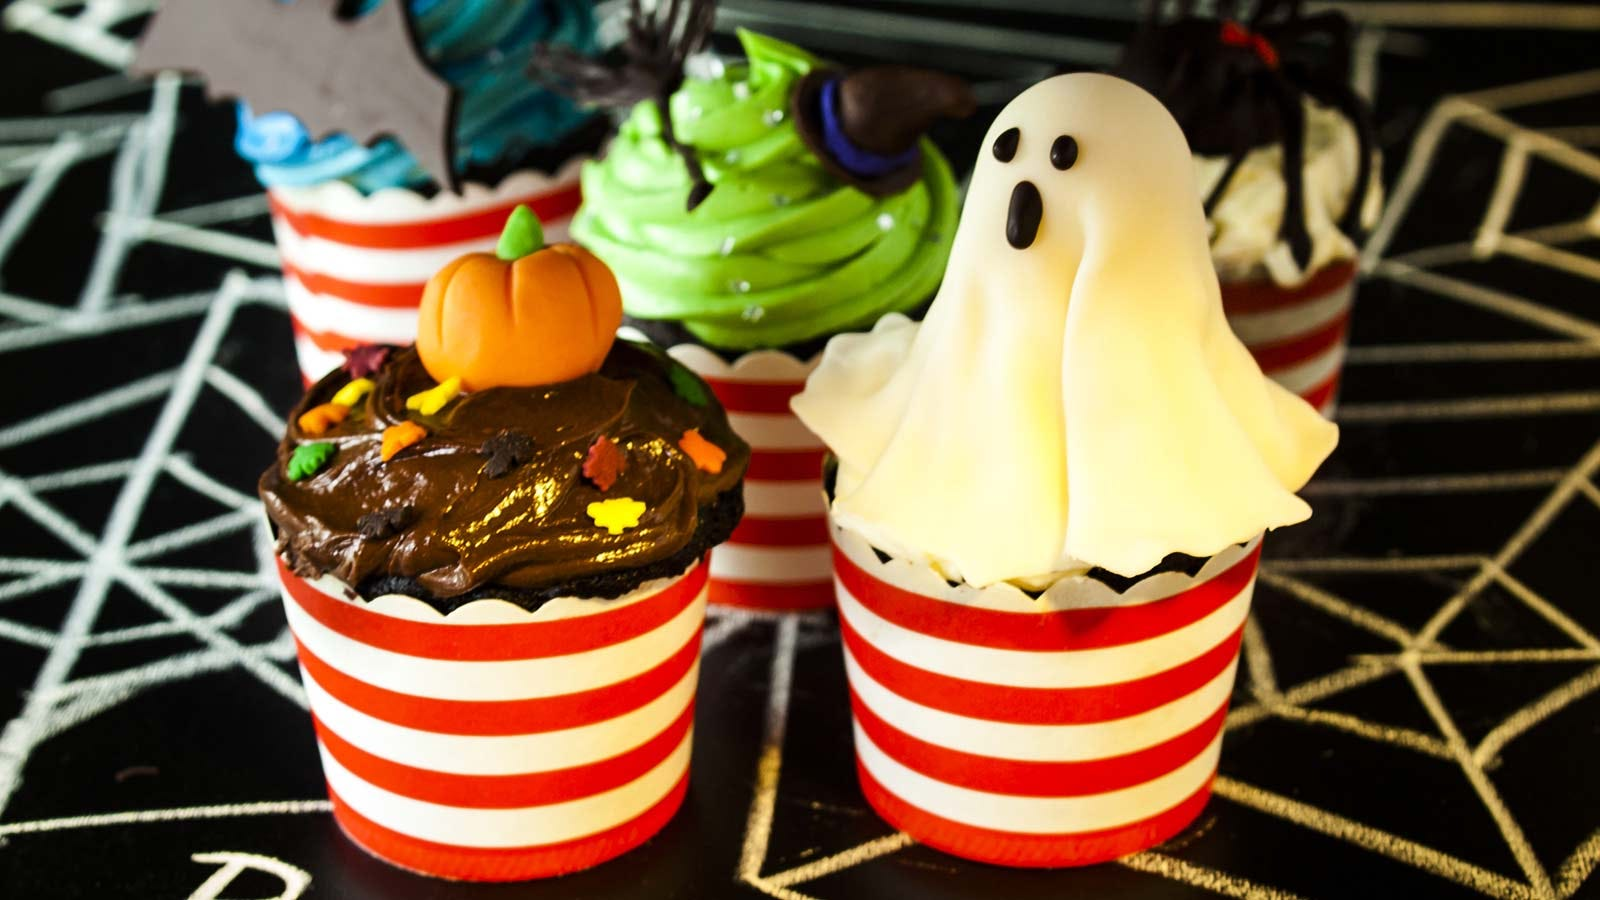 Fancy Halloween cupcakes topped with fondant ghosts, pumpkins, and more.